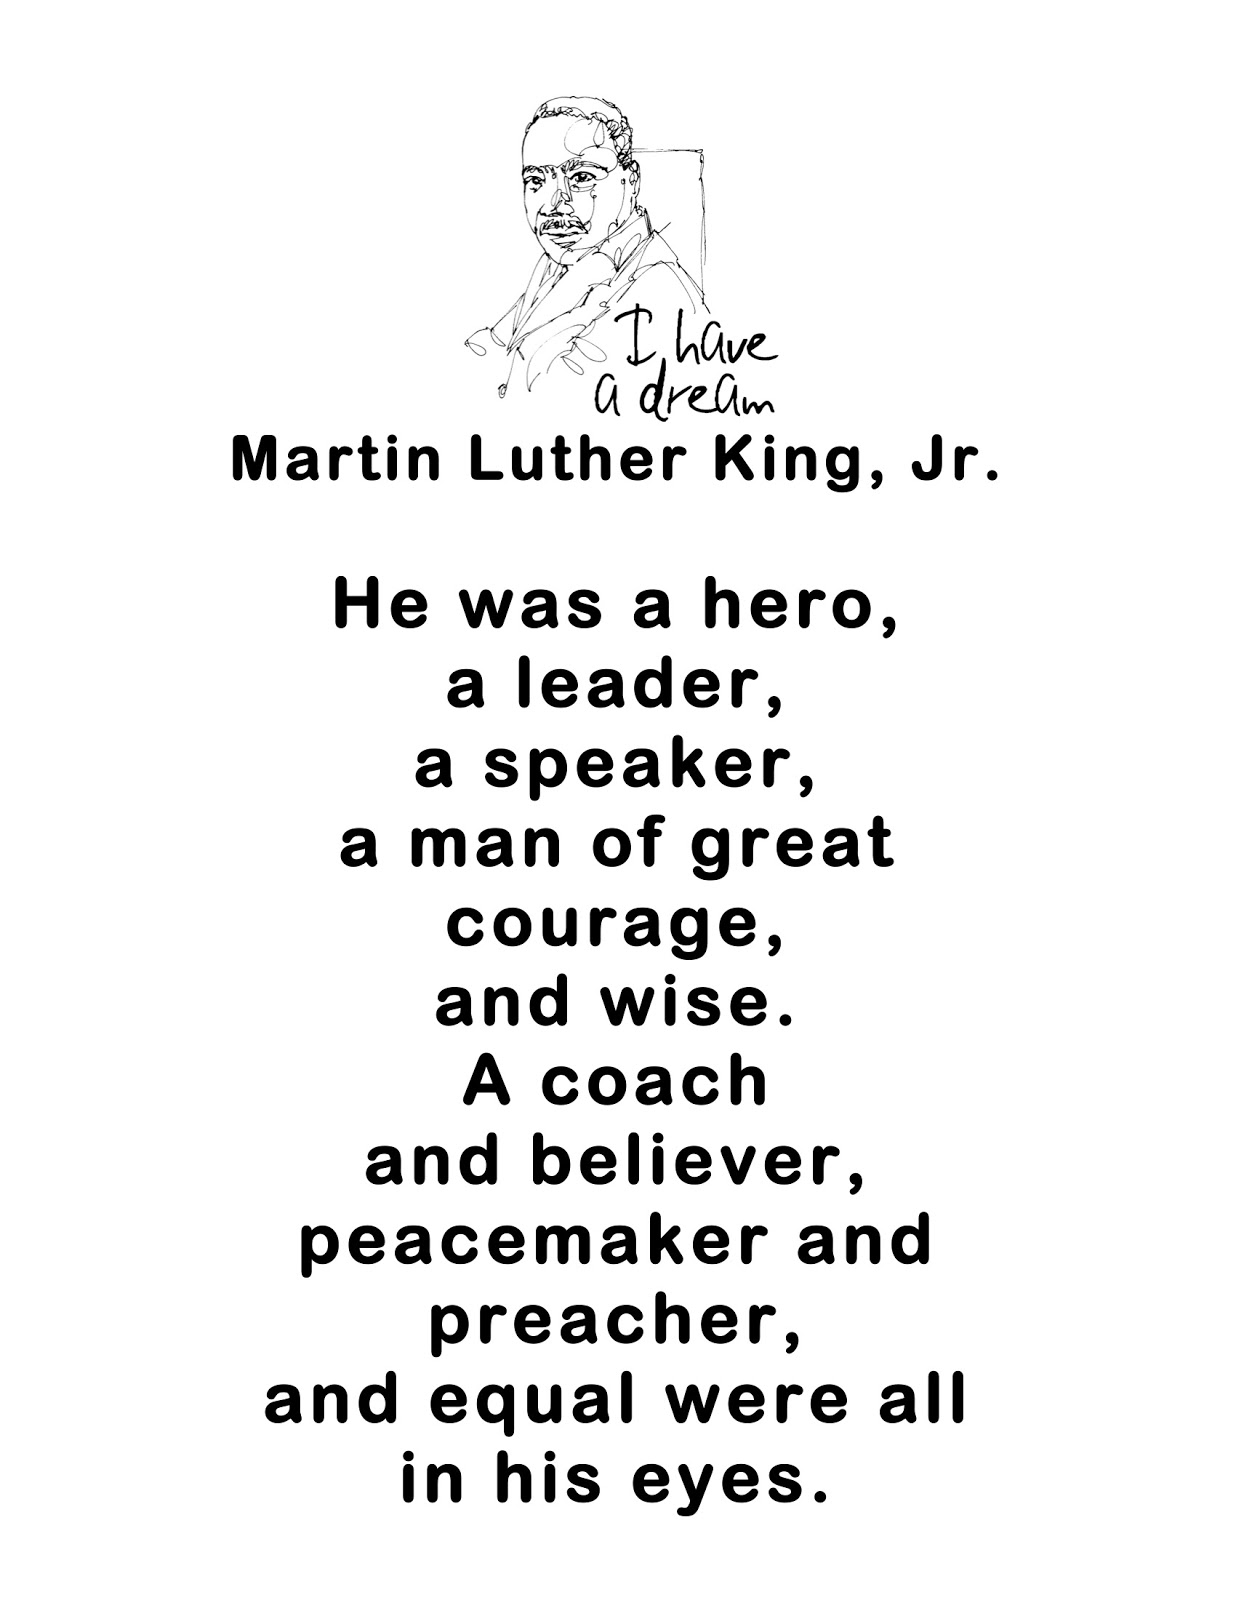 Just 4 Teachers Sharing Across Borders Martin Luther King Jr